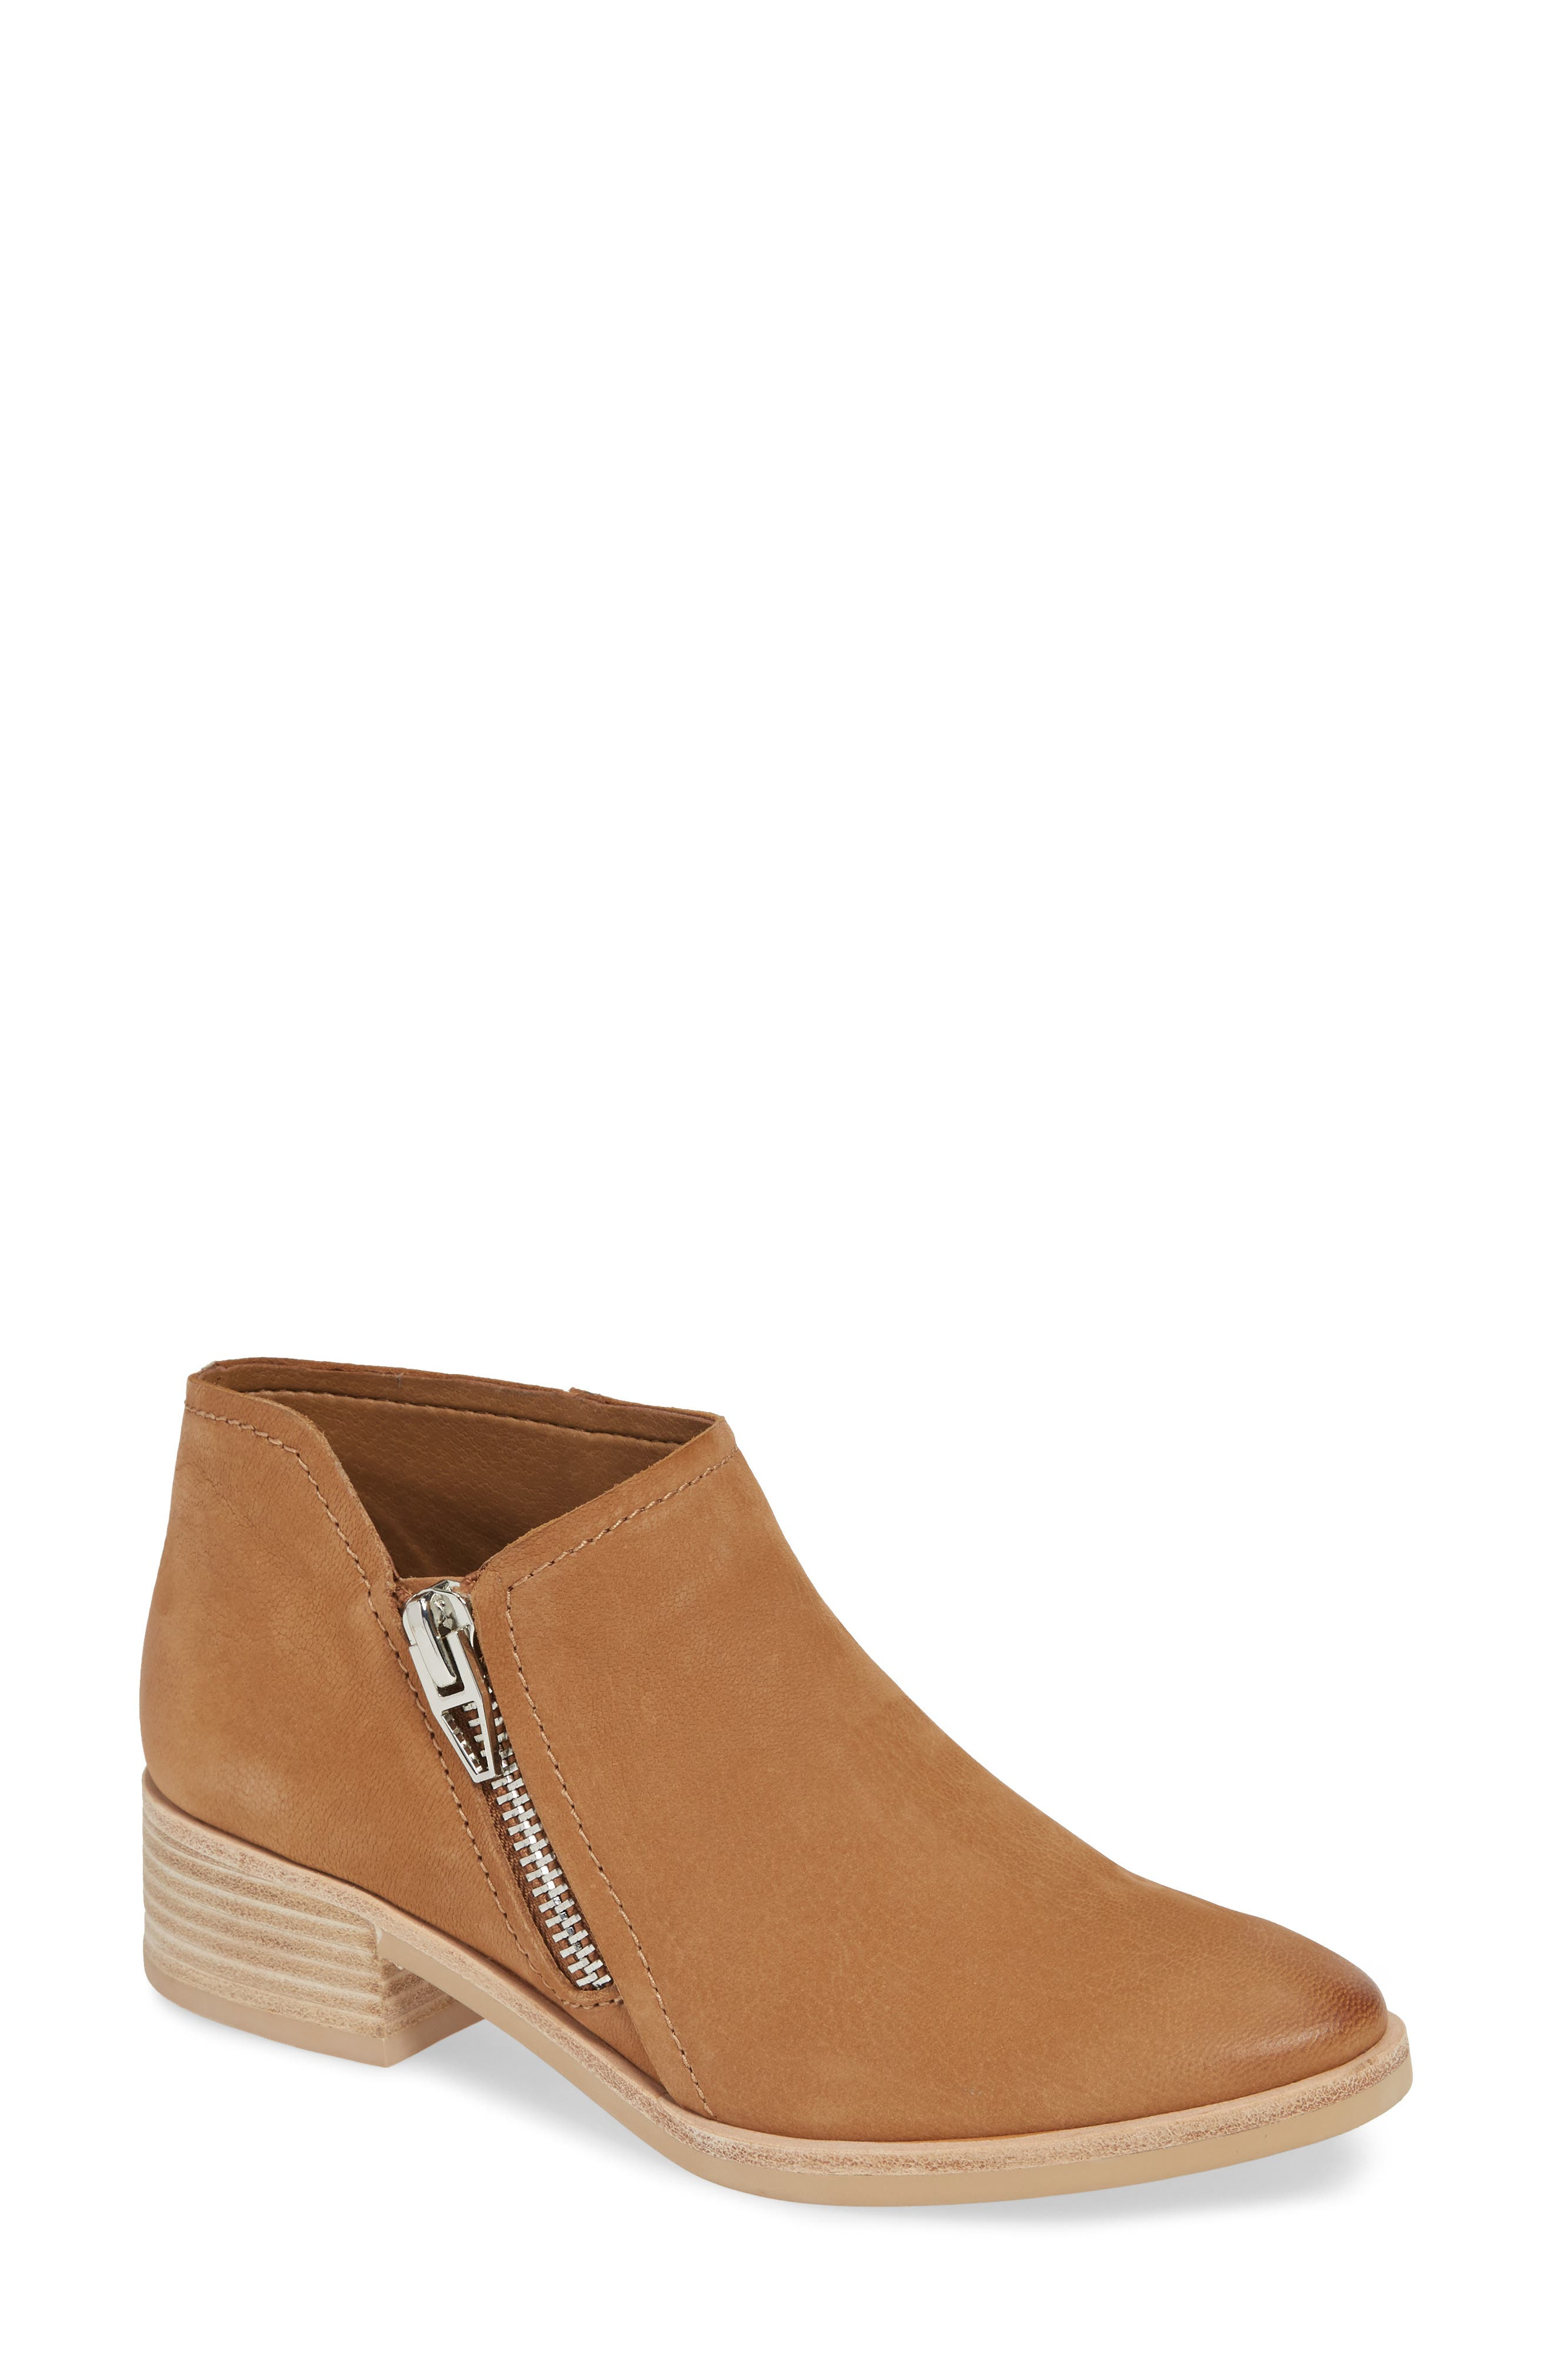 Trent Bootie,                             Main thumbnail 1, color,                             TAUPE